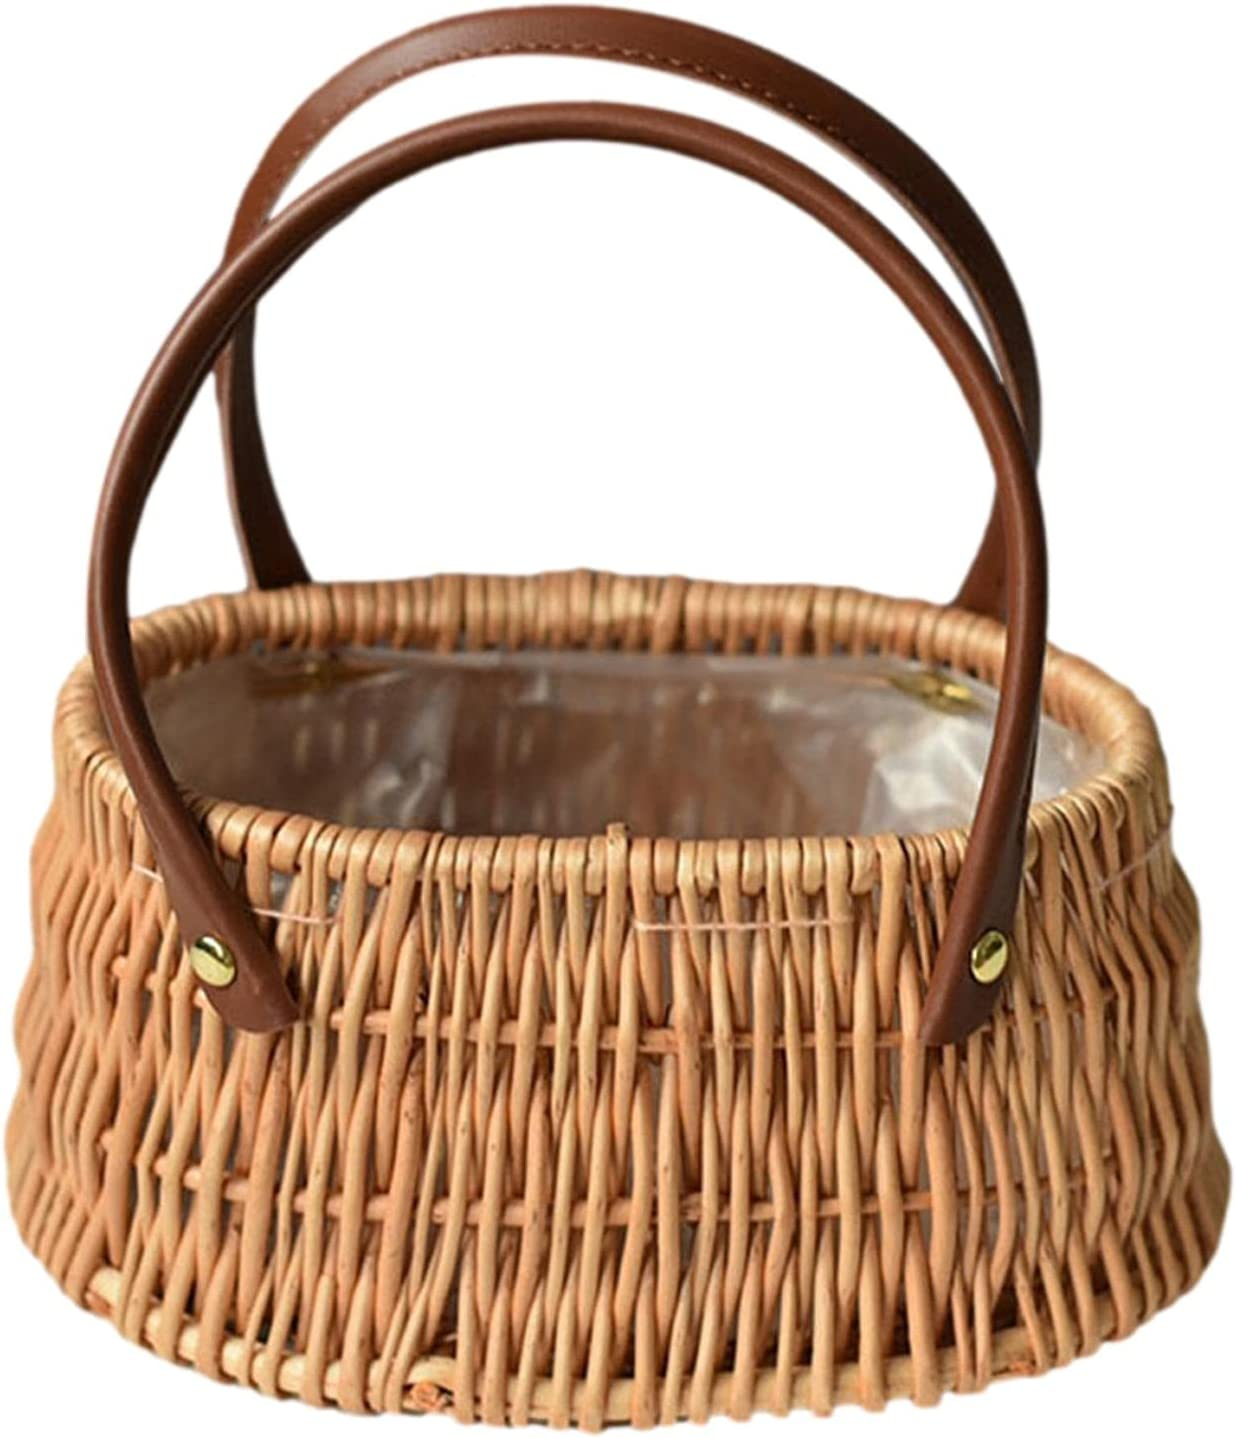 P Tulsa Mall A Wicker Picnic Basket with Handles Double Folding Sale SALE% OFF Willow Han